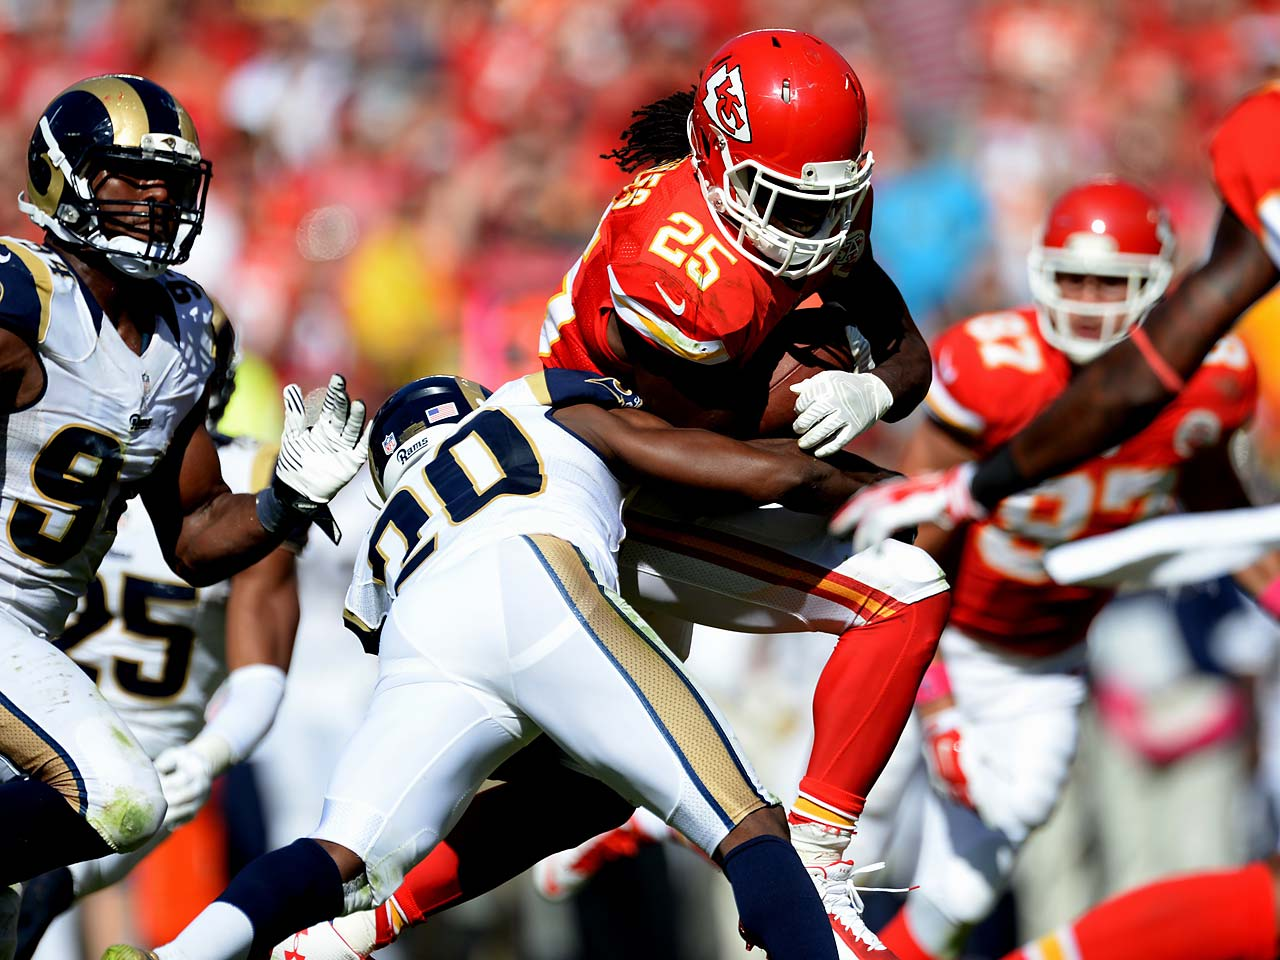 Jamaal Charles scored two touchdowns in Kansas City's 34-7 win over St. Louis.